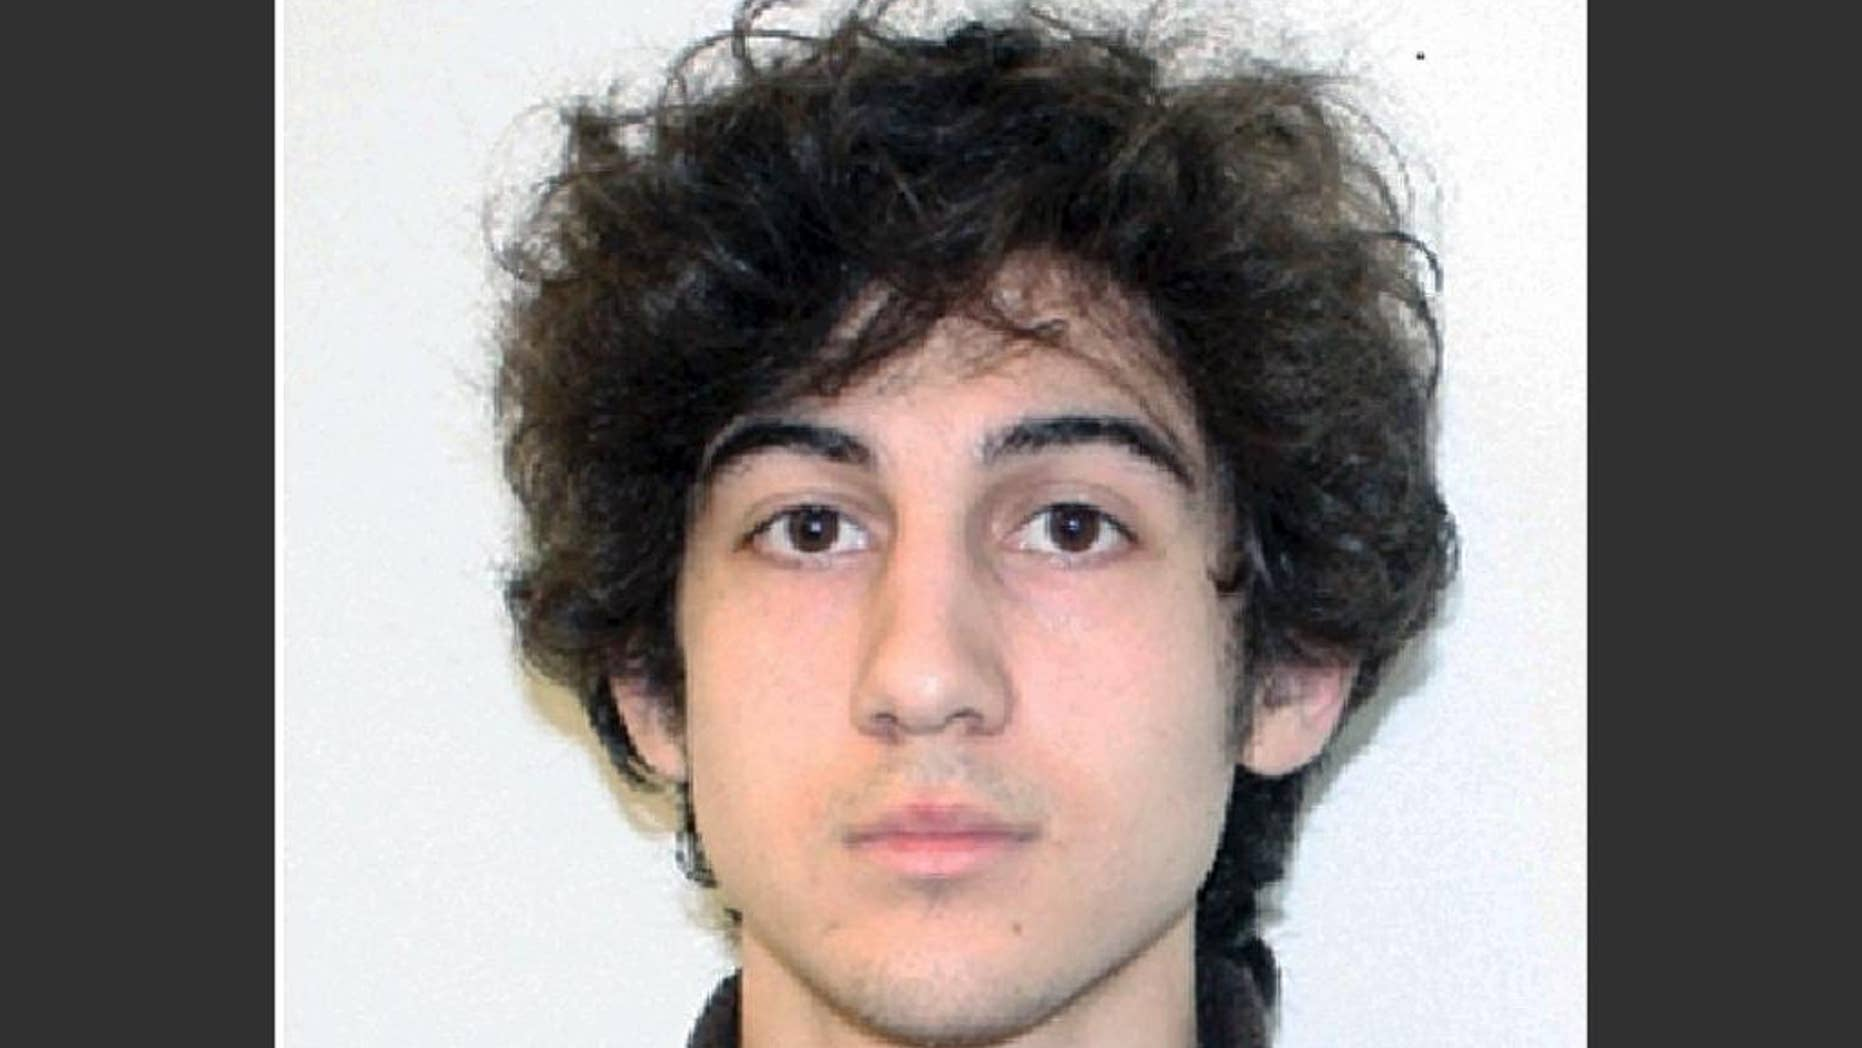 FILE - This file photo provided Friday, April 19, 2013 by the Federal Bureau of Investigation shows Boston Marathon bombing suspect Dzhokhar Tsarnaev. The focus of the Boston Marathon bombing trial figures to be as much on what punishment Dzhokhar Tsarnaev could face as on his responsibility for the attack. With testimony expected to start later in January 2015, the Justice Department has given no indication it is open to any proposal from the defense to spare Tsarnaev's life, pushing instead toward a trial that could result in a death sentence. (AP Photo/FBI, File)